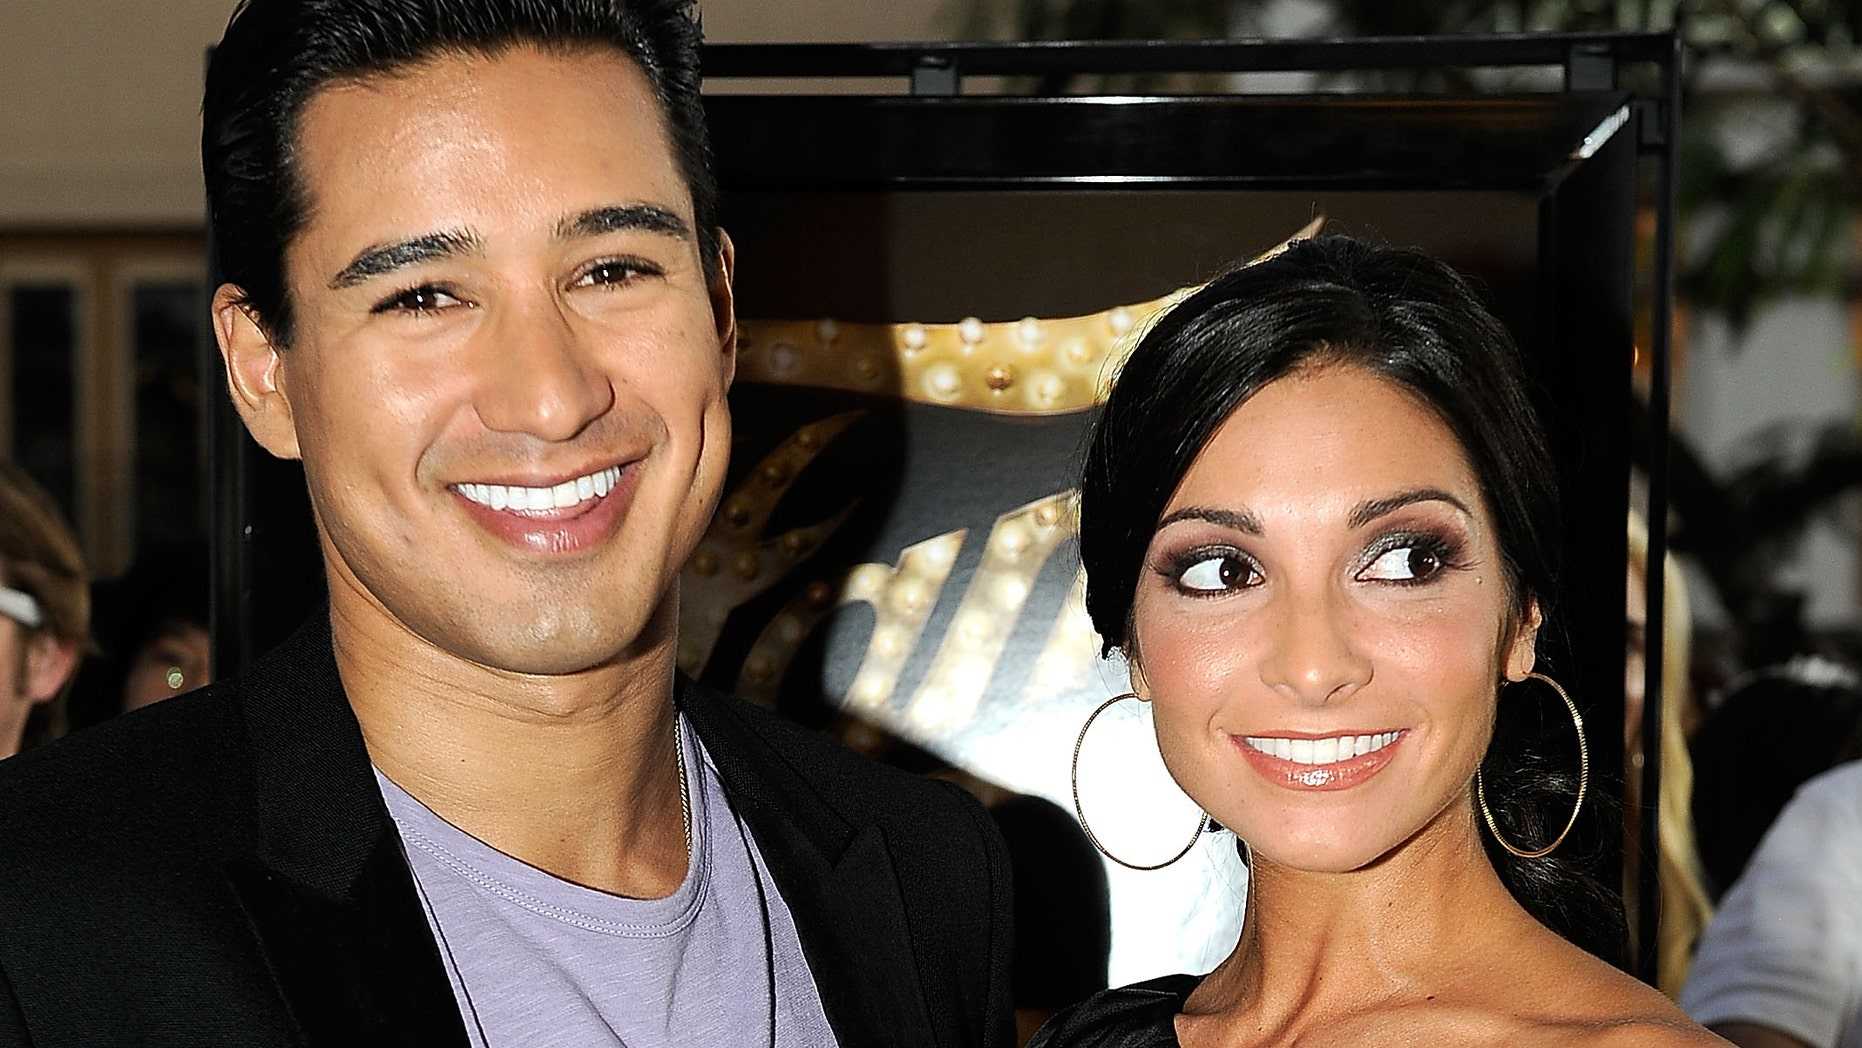 """LOS ANGELES, CA - SEPTEMBER 23:  Actor Mario Lopez and Courtney Mazza arrive at the premiere of MGM Pictures' """"Fame"""" at the Pacific Grove Theaters on September 23, 2009 in Los Angeles, California.  (Photo by Alberto E. Rodriguez/Getty Images)"""